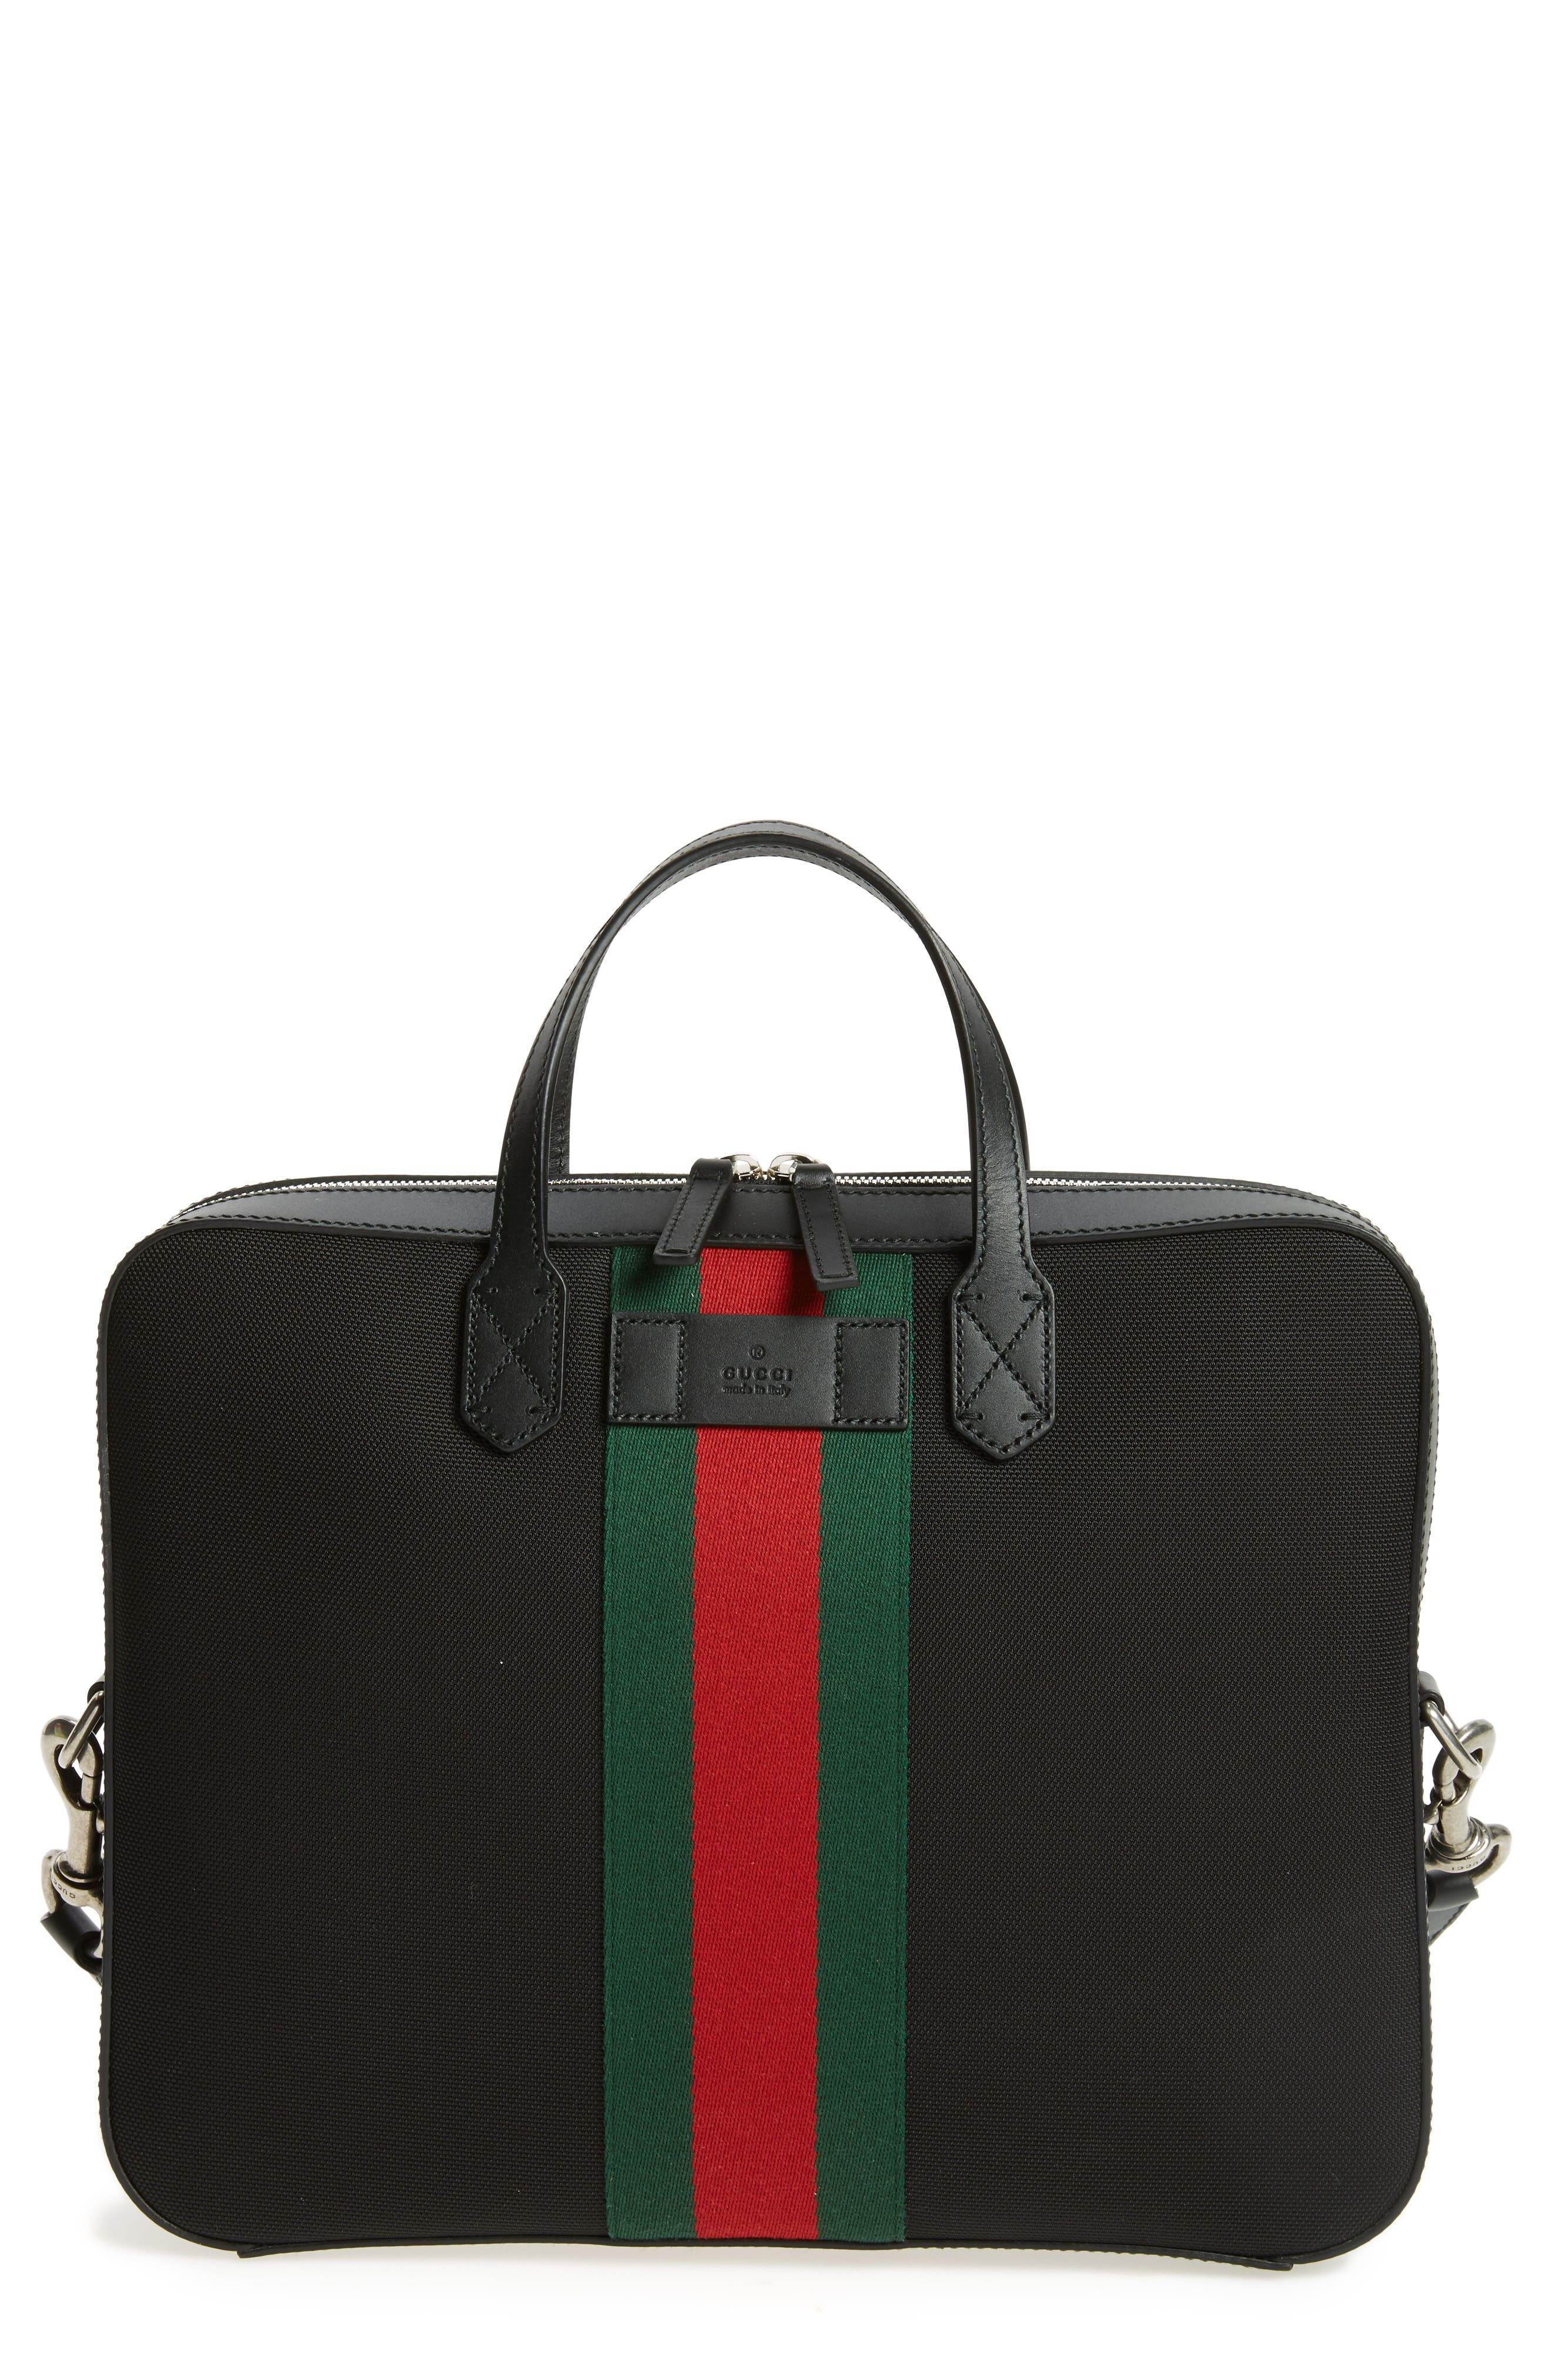 Band Business Case,                         Main,                         color, 019